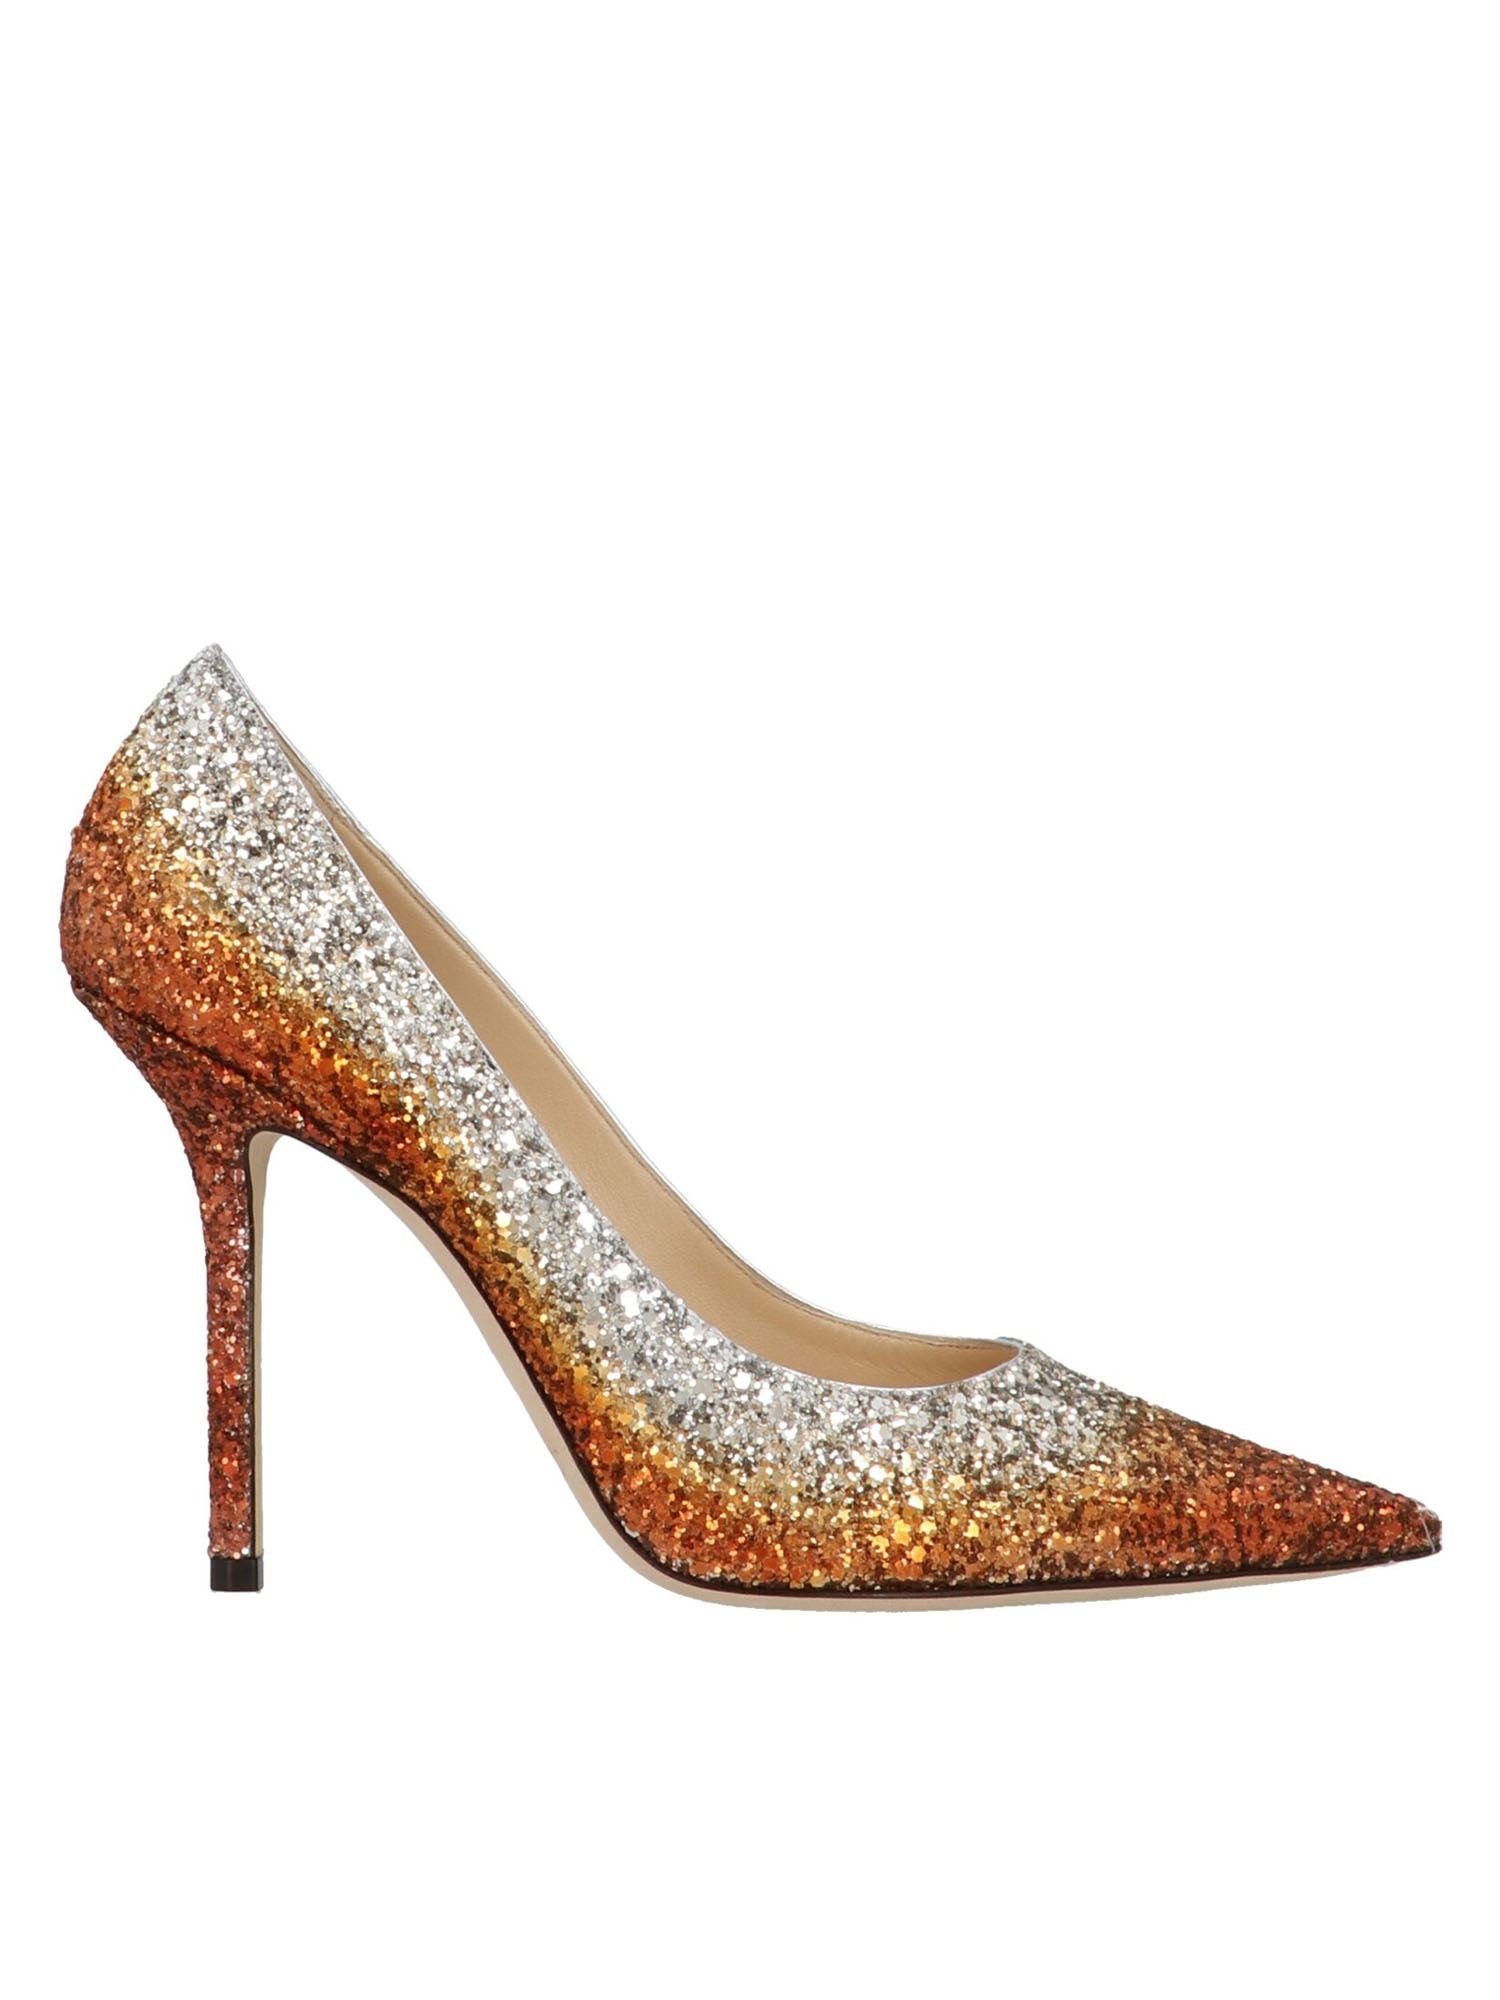 Jimmy Choo LOVE 100 PUMPS IN SILVER COPPER